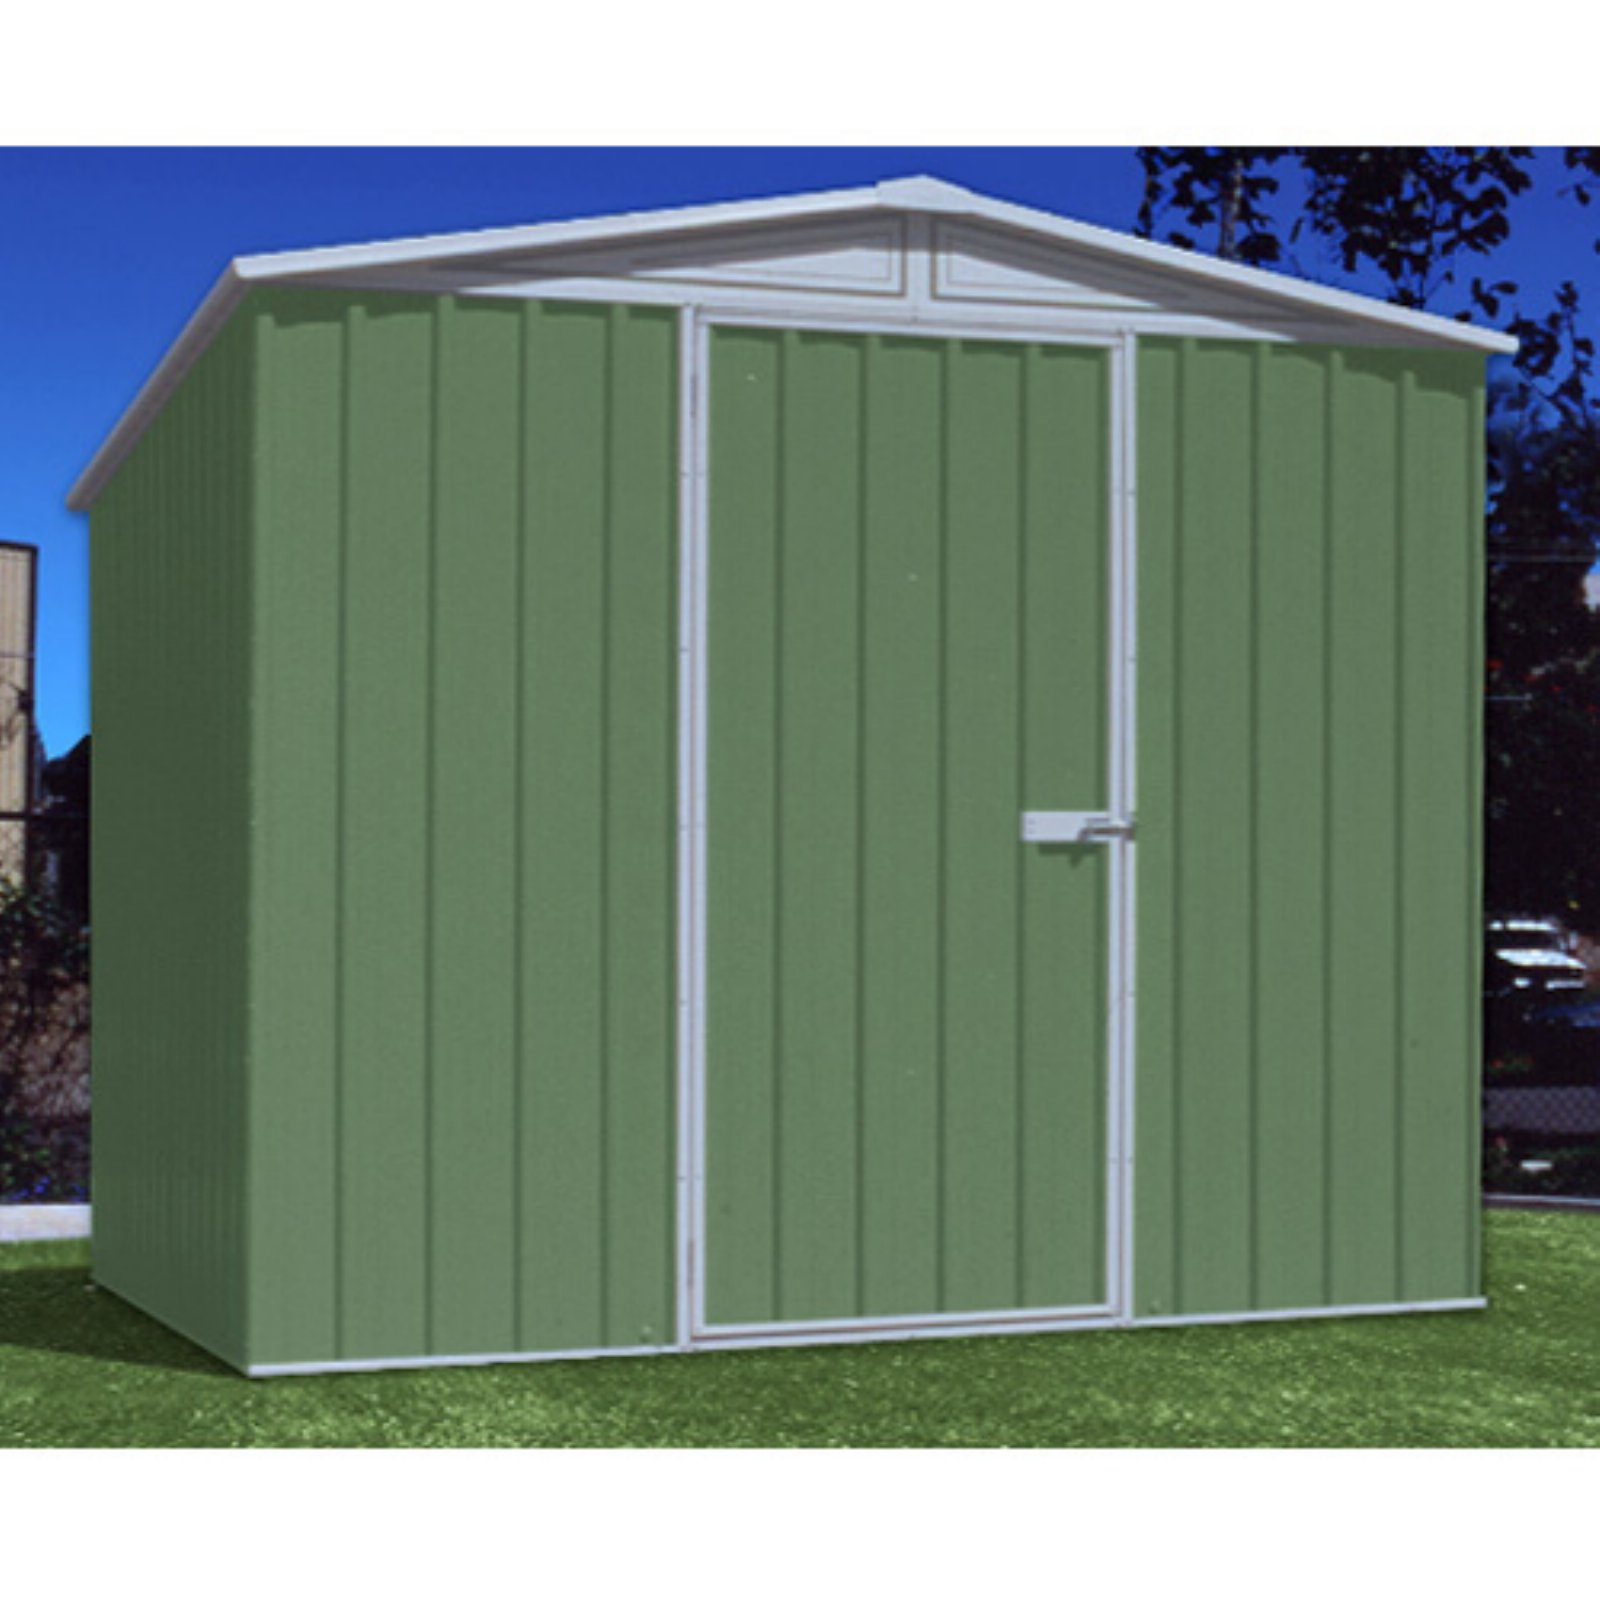 ABSCO Sheds 23221RK Regent 7 x 7 ft. Storage Shed